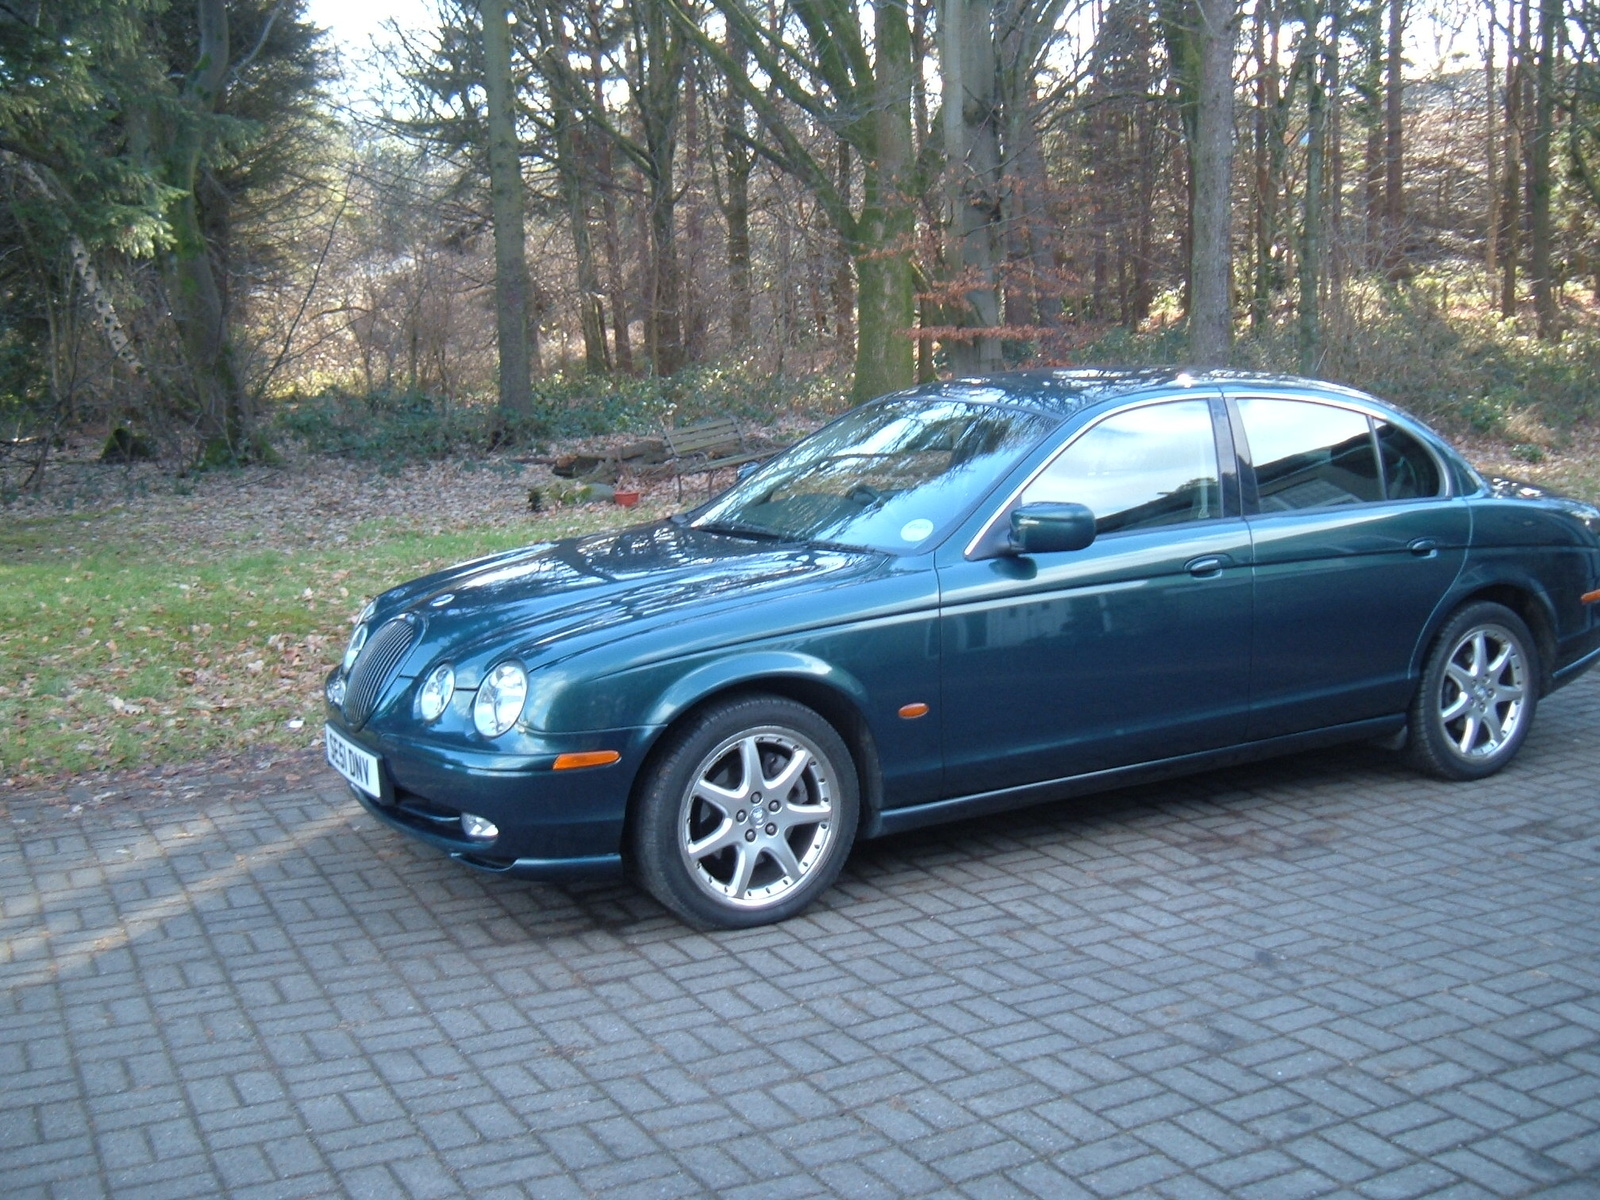 2002 Jaguar S-Type 3.0 picture, exterior